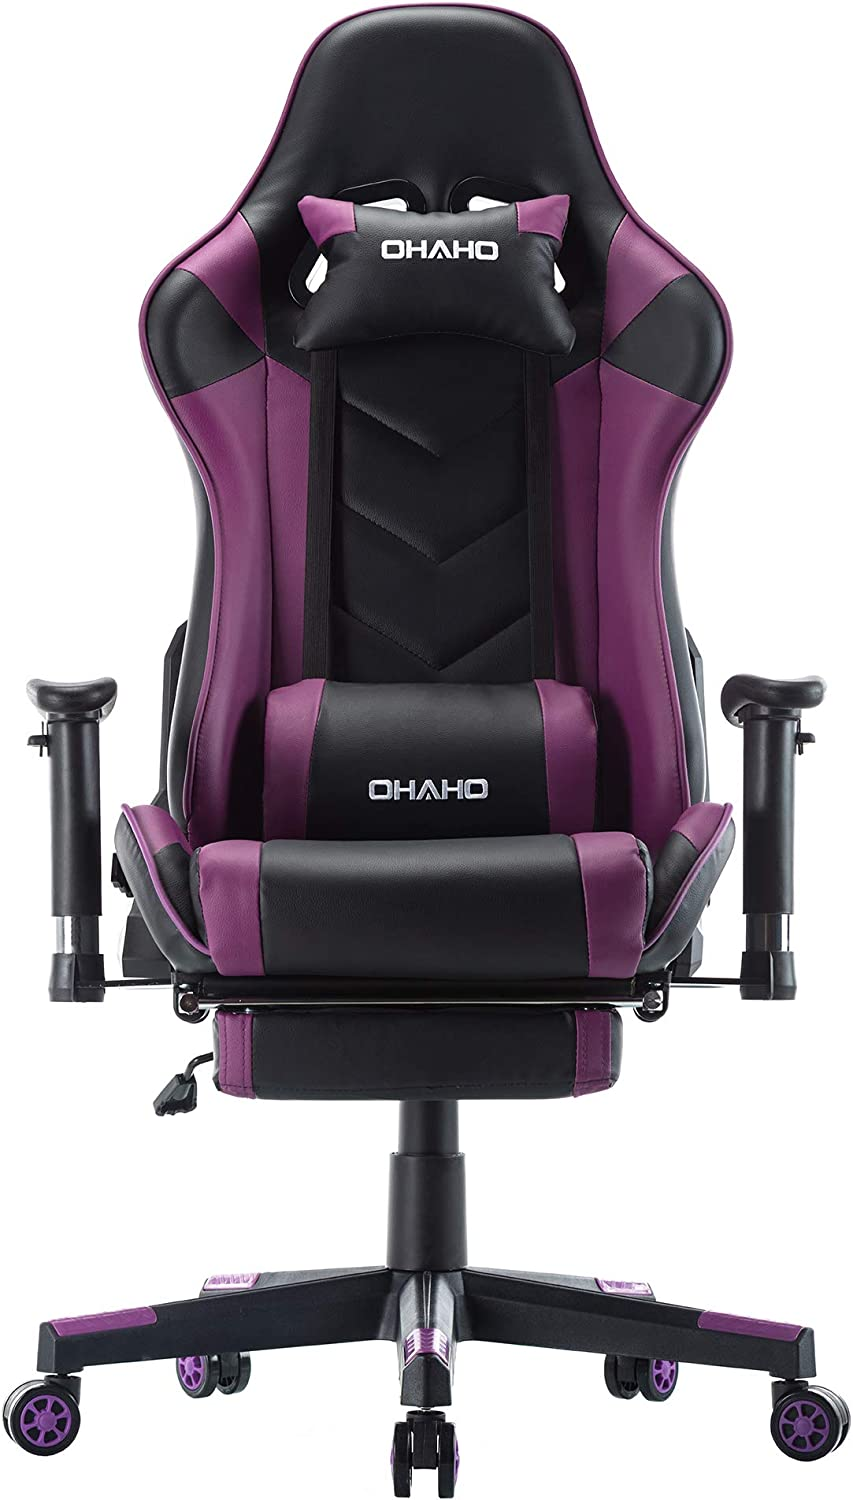 OHAHO Gaming Chair Racing Style Office Chair Adjustable Massage Lumbar Cushion Swivel Rocker Recliner Leather High Back Ergonomic Computer Desk Chair with Retractable Arms and Footrest (Black/Purple)